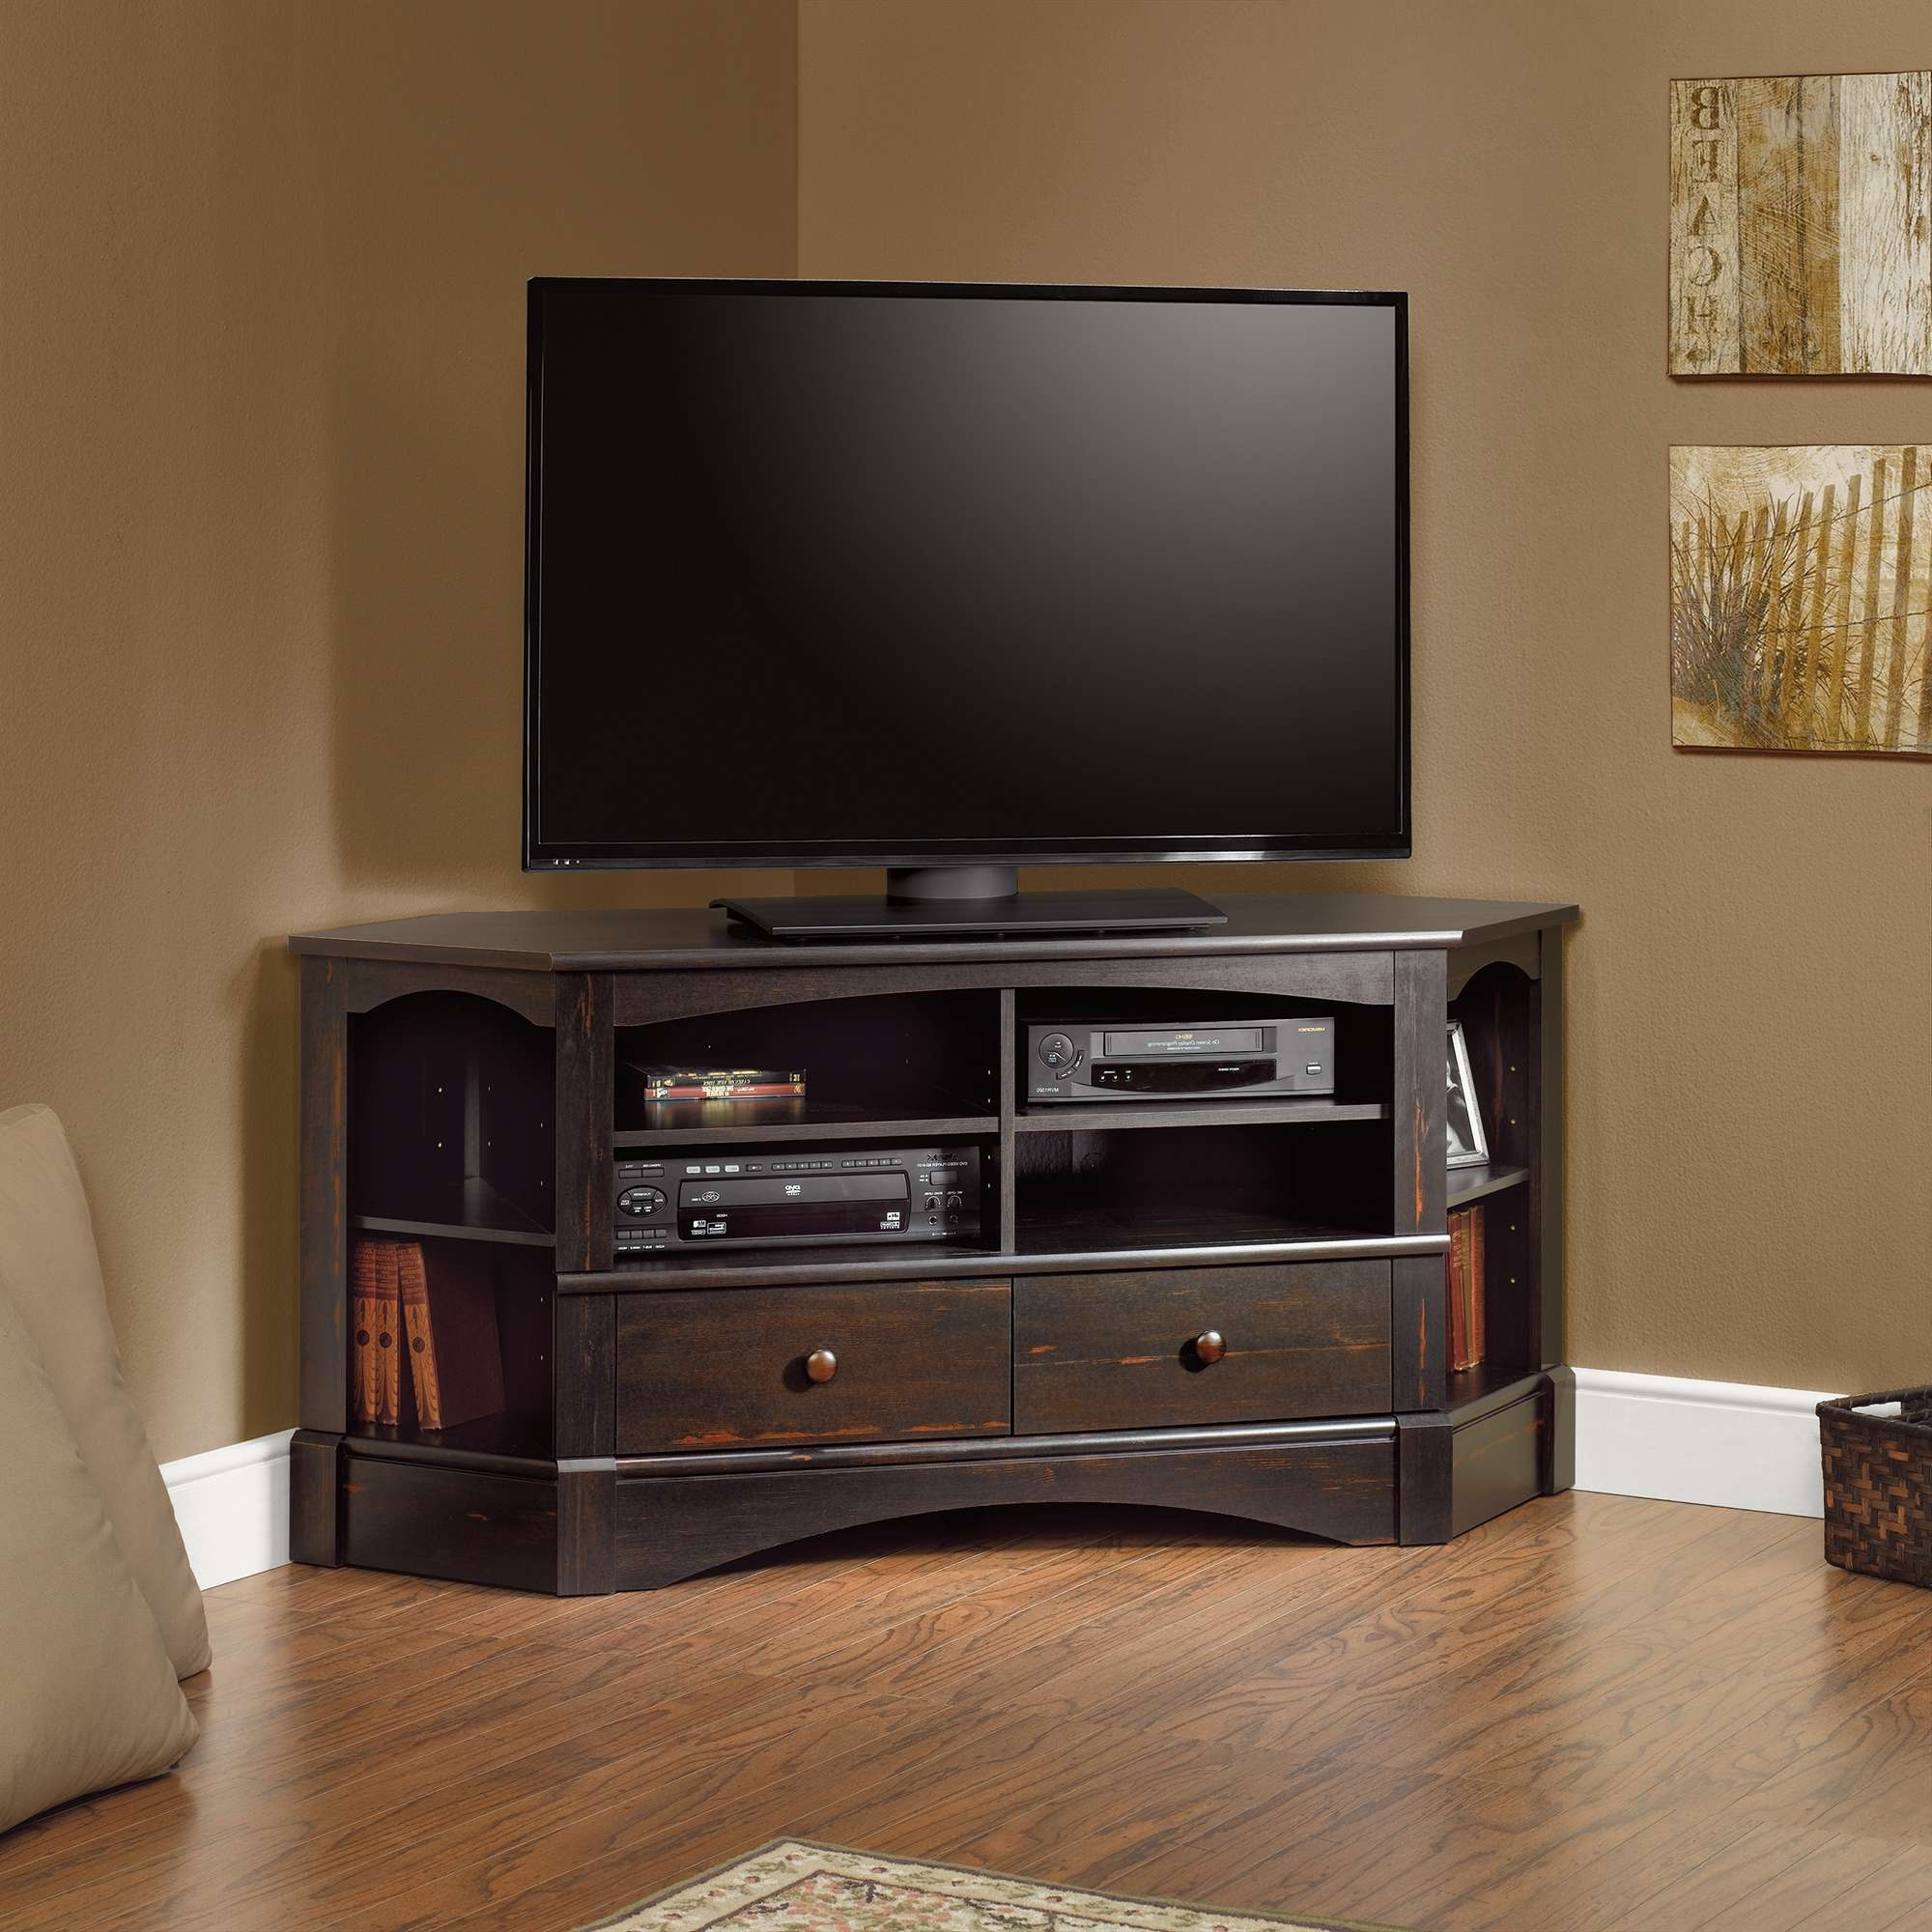 Small Wooden Corner Tv Stand Console Cabinet With Fireplace For Small Corner Tv Cabinets (View 16 of 20)